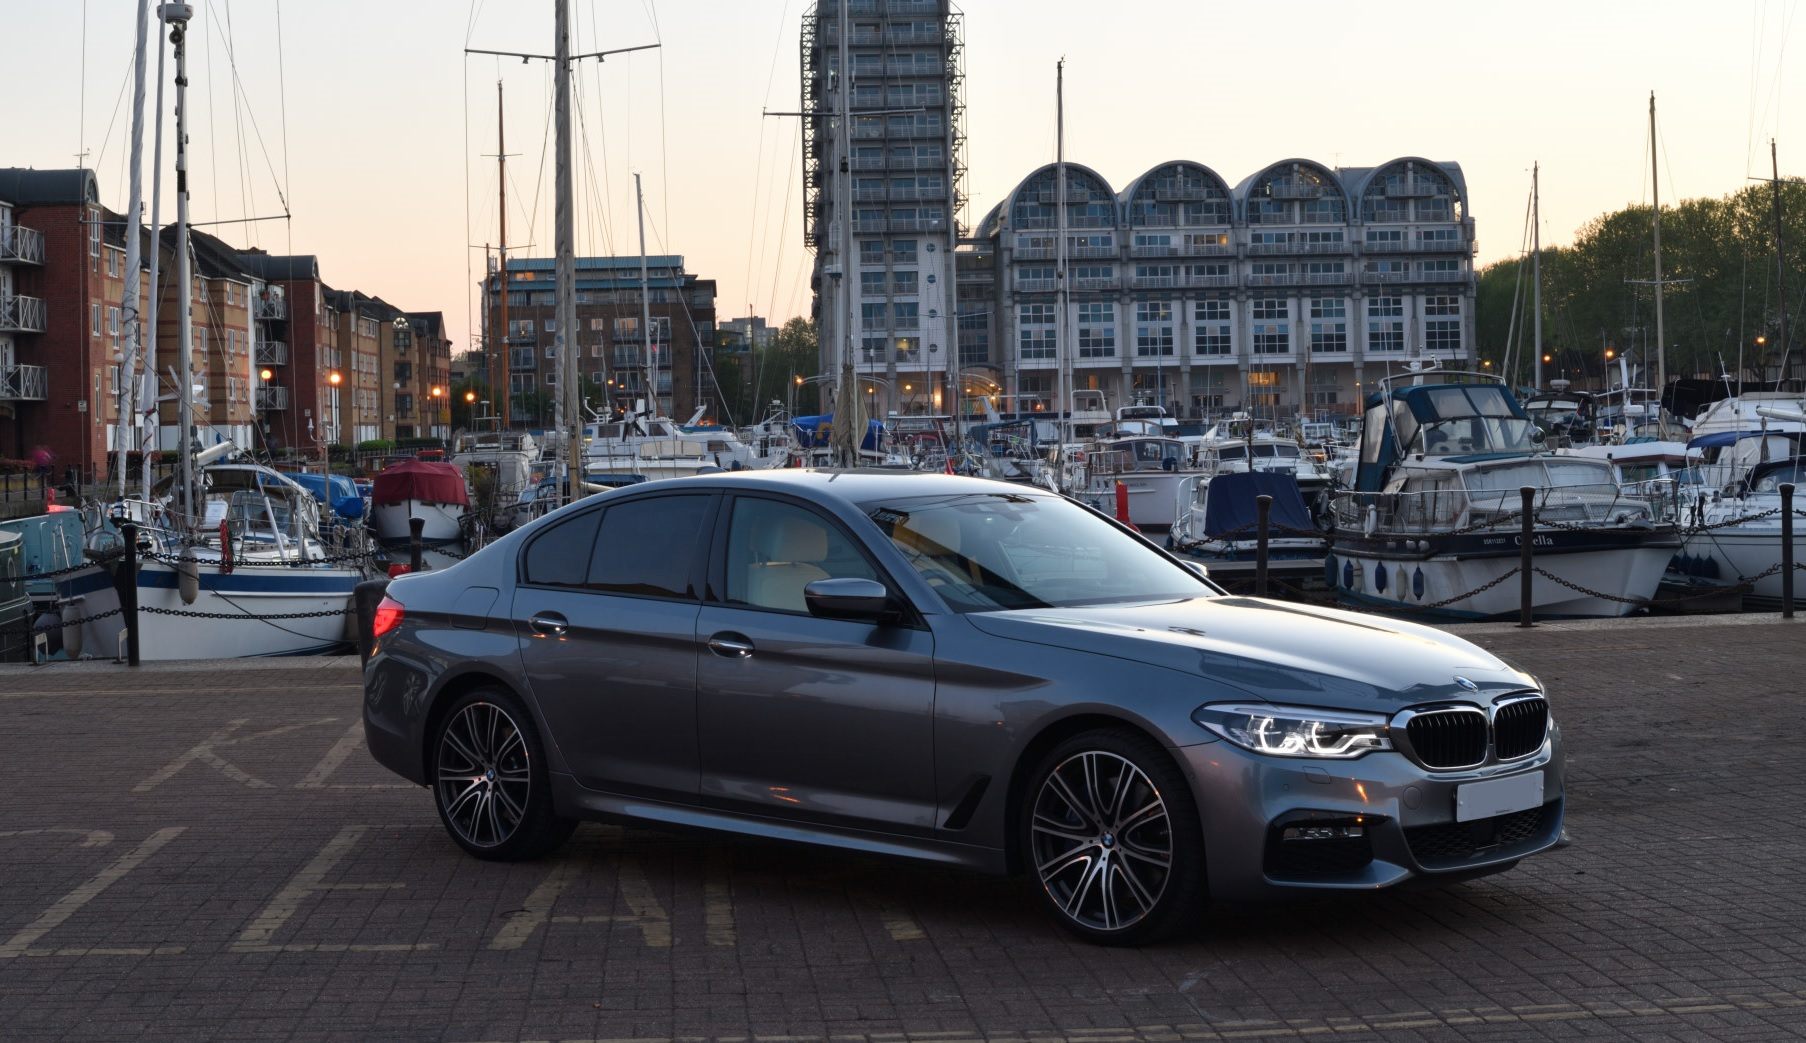 Review of 540ix Msport after getting on for nearly a year